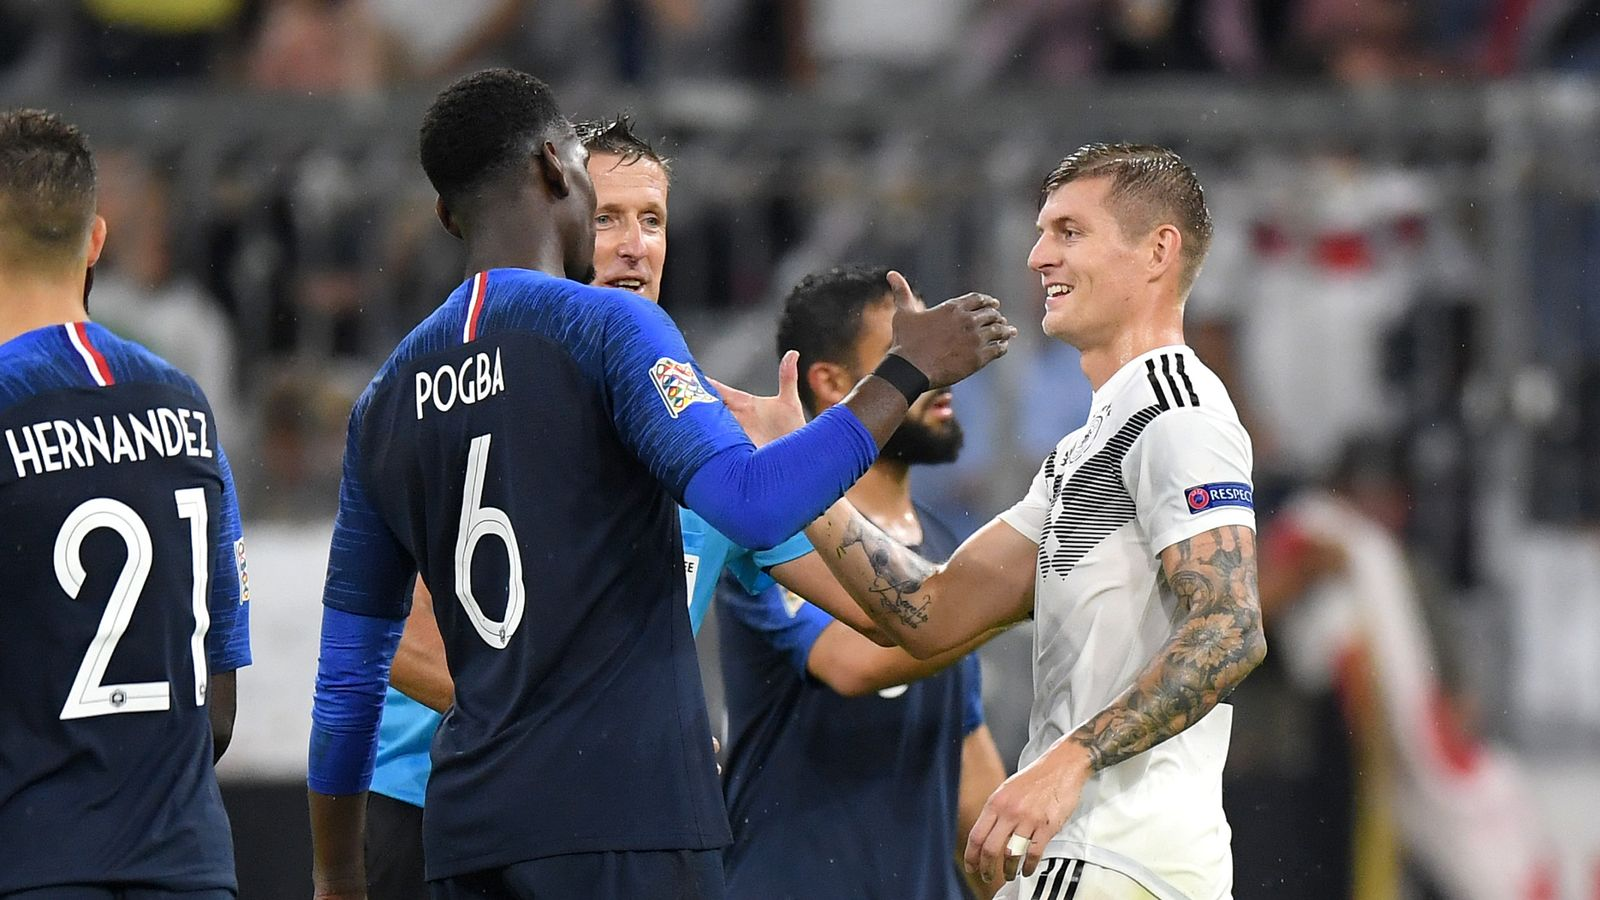 European Paper Talk: Paul Pogba, Toni Kroos and Florentino Luis